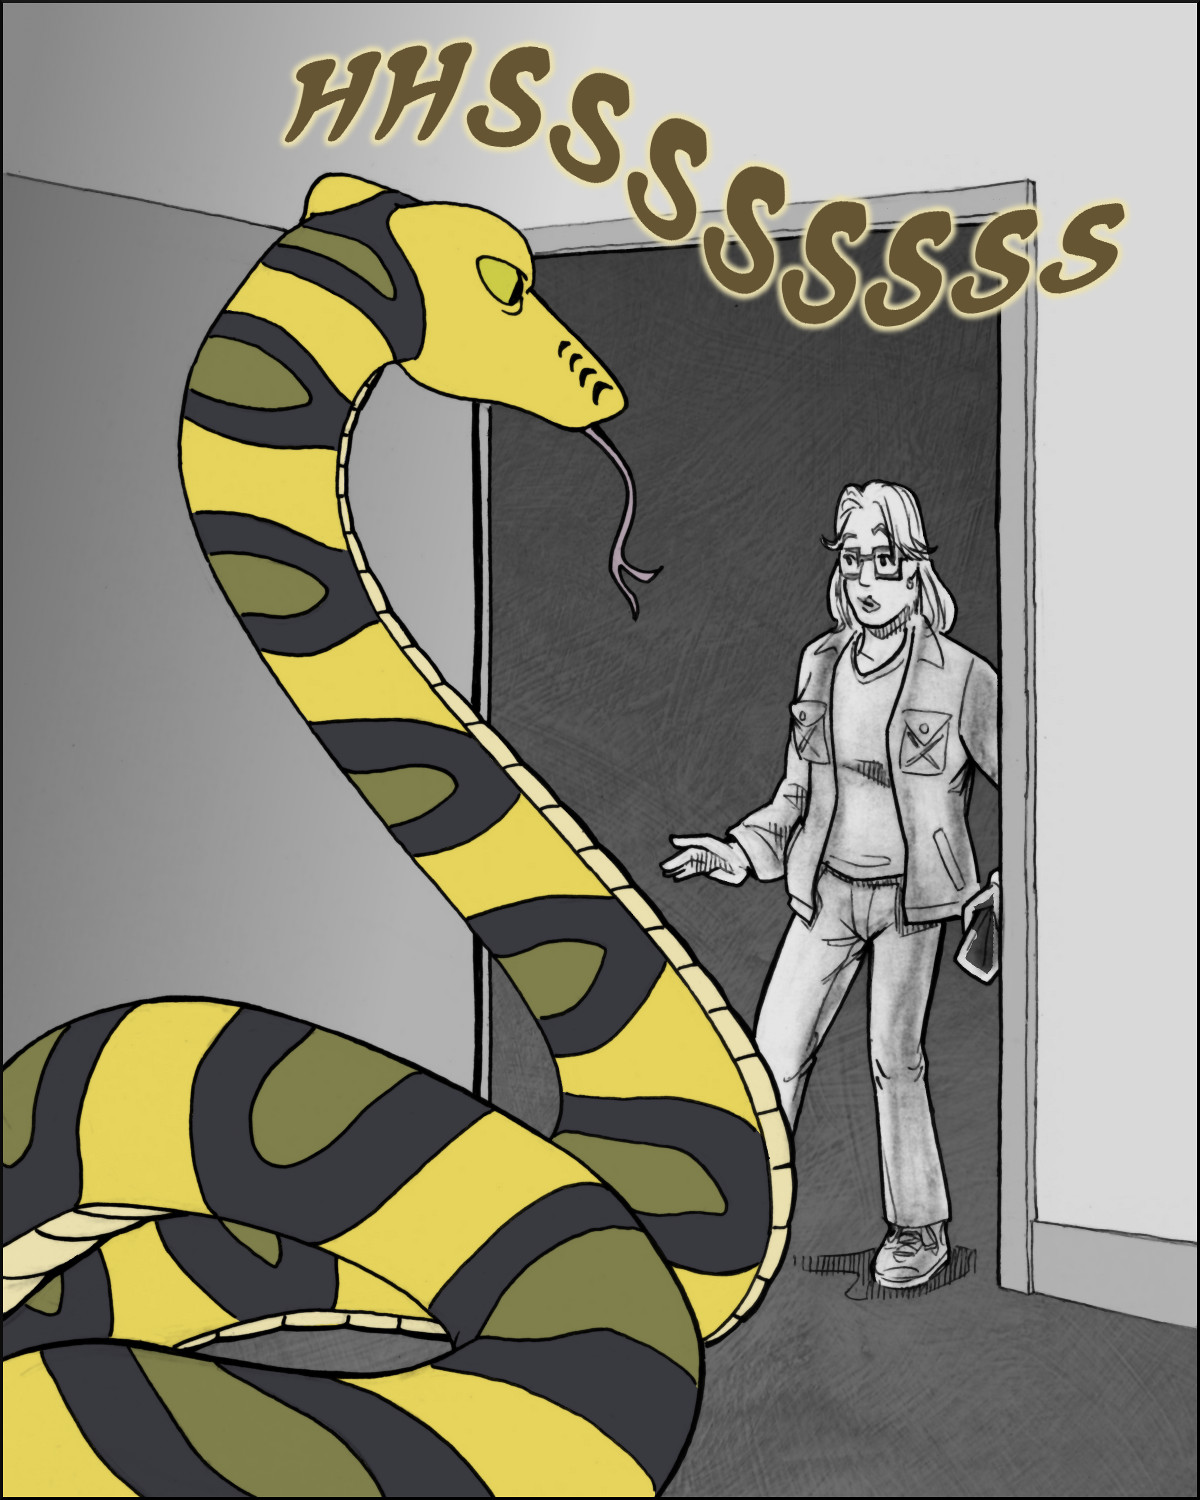 Oh crap! Giant snake!